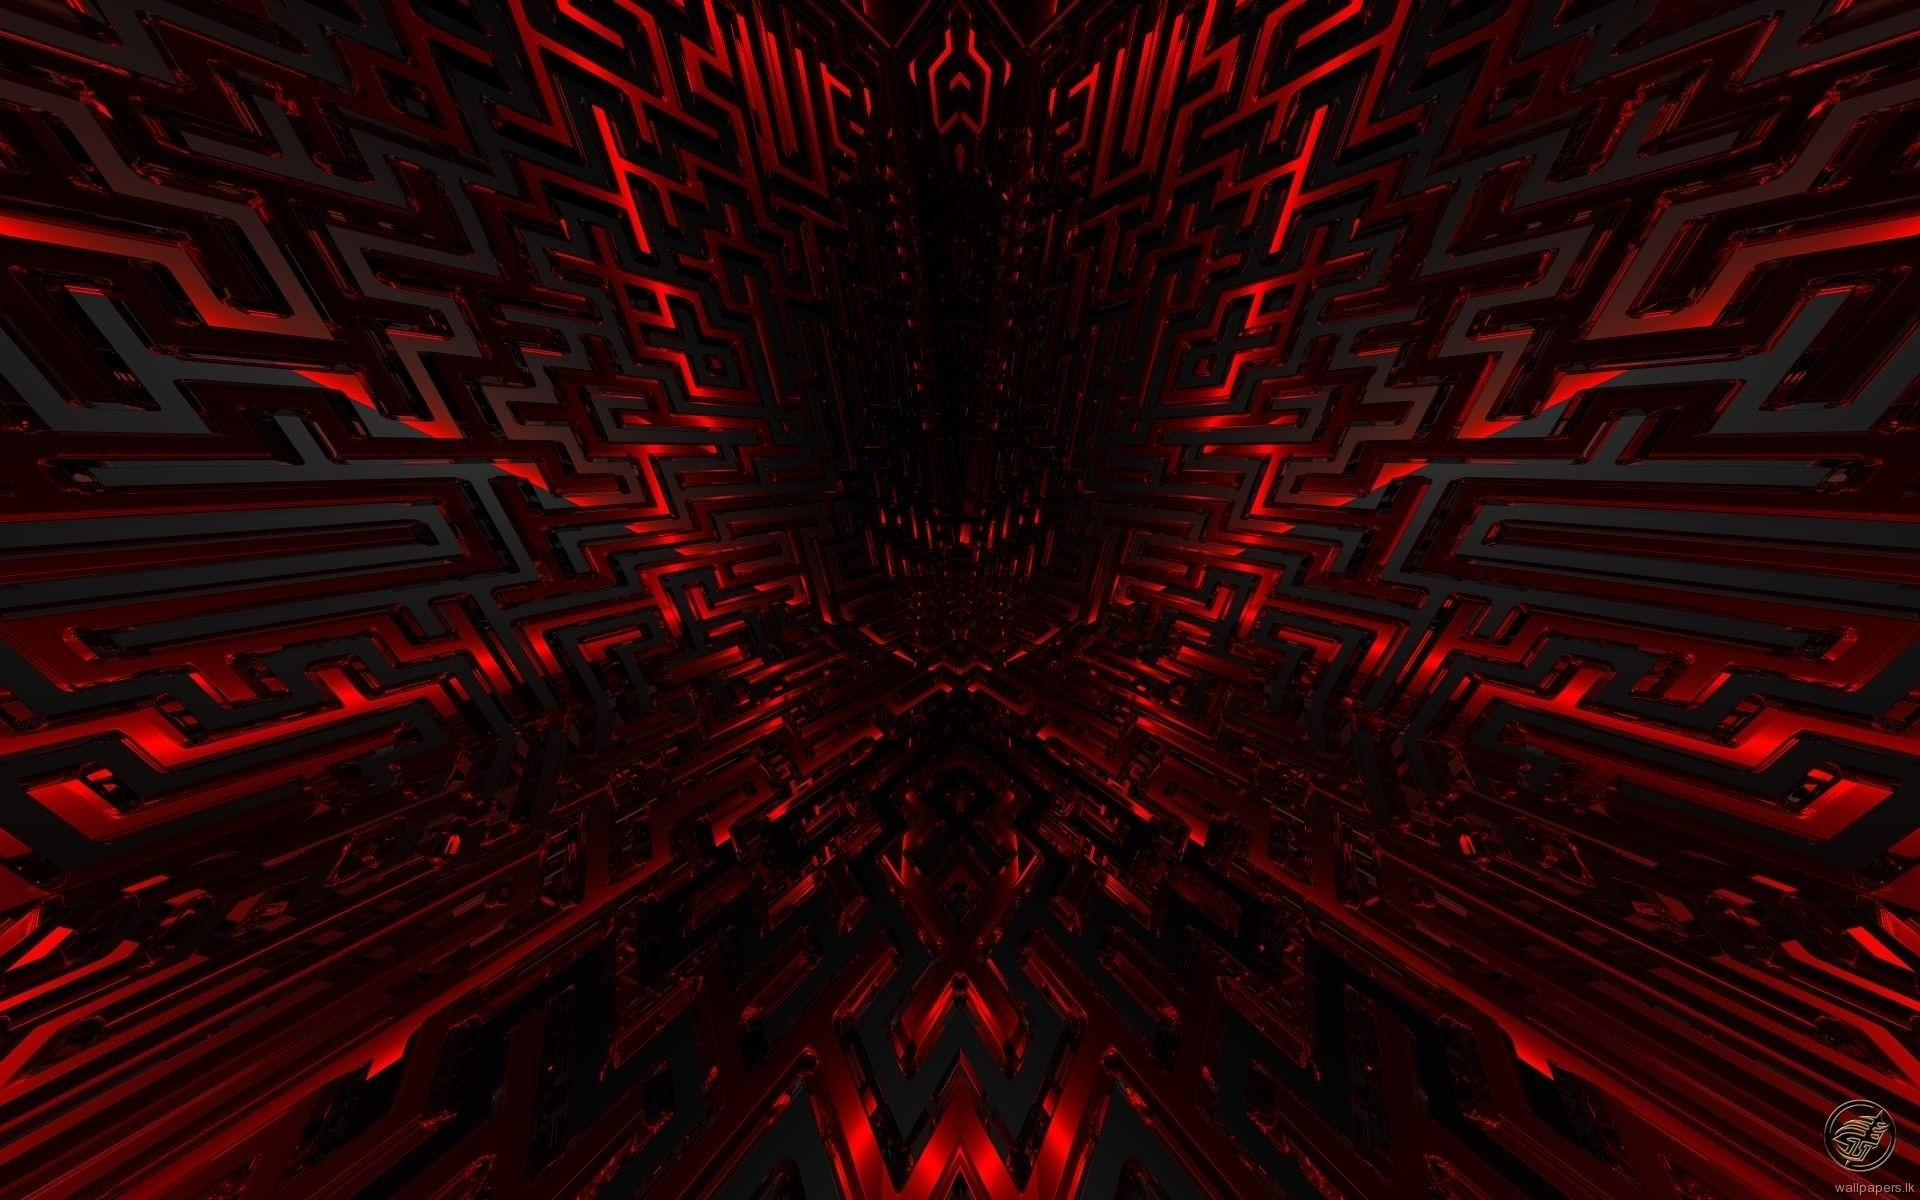 3d red and black background images hd wallpapers  | background